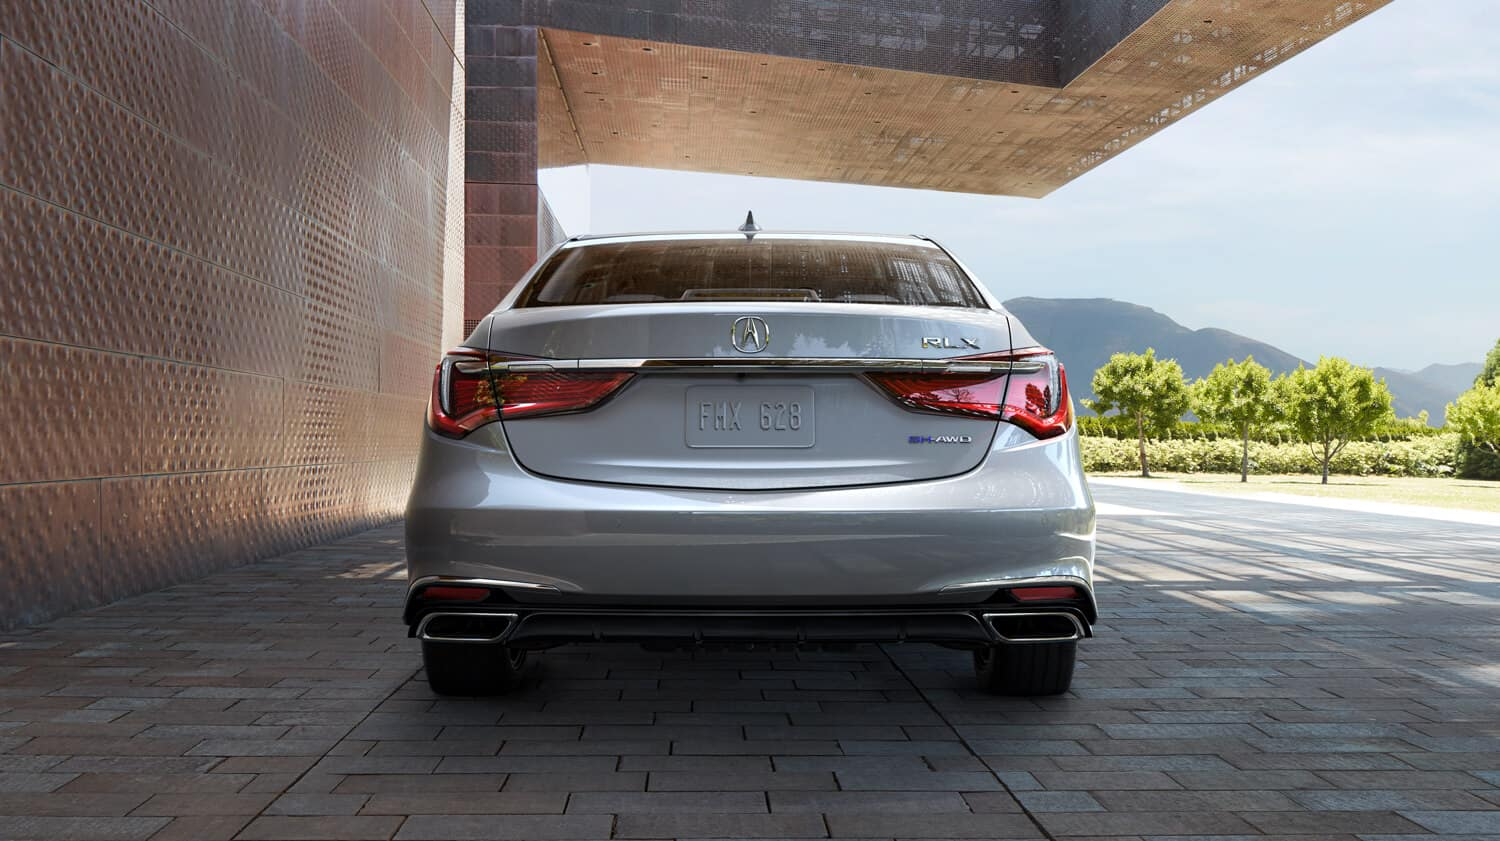 2020 Acura RLX Exterior Rear Angle Dual Exhaust